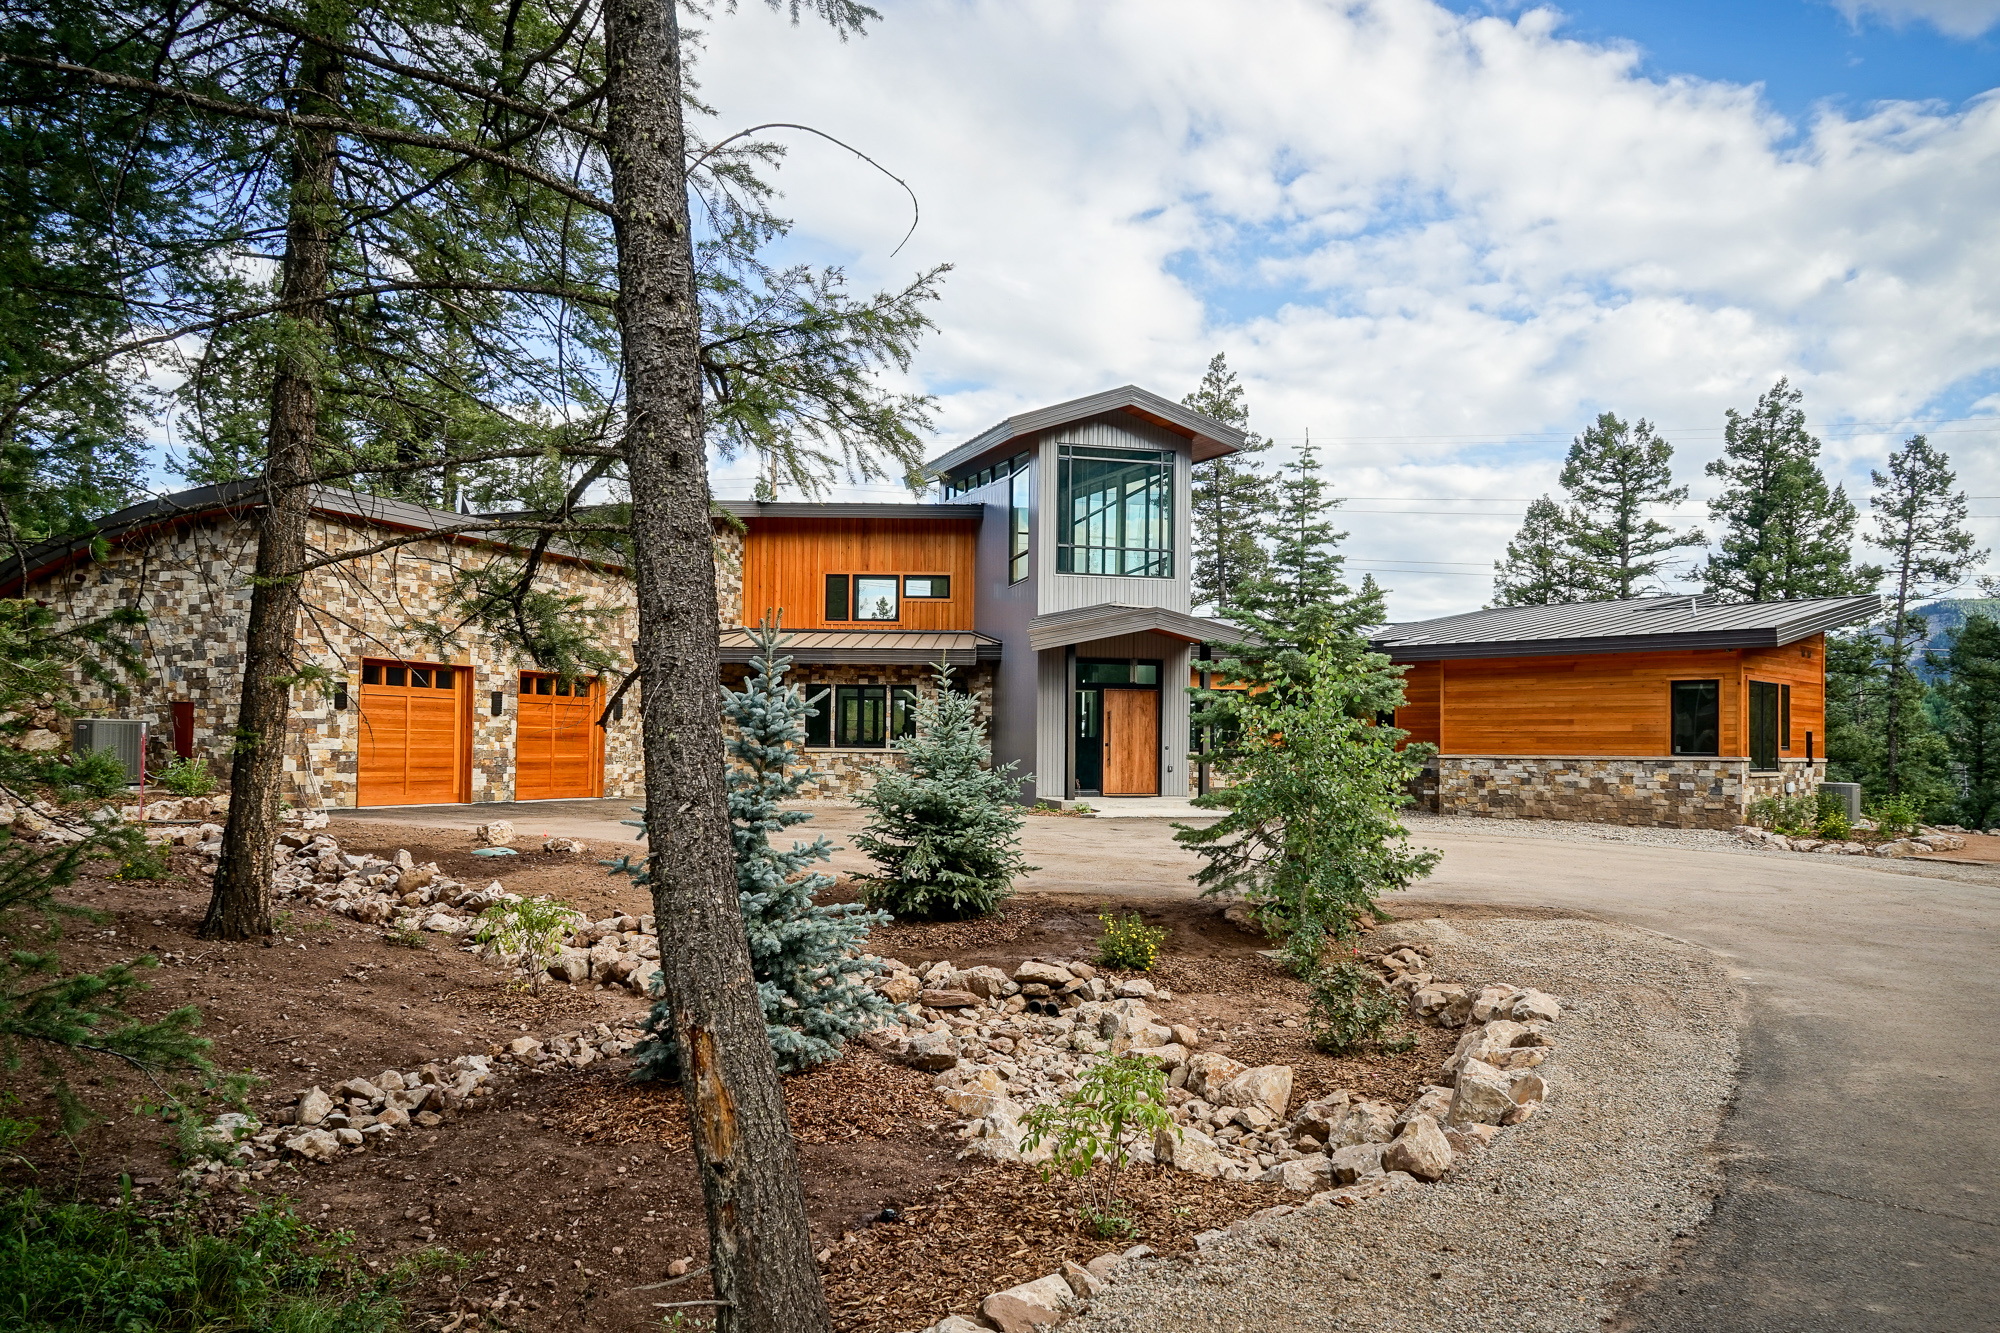 Two Dogs - Parade of Homes Winner  •  New Construction